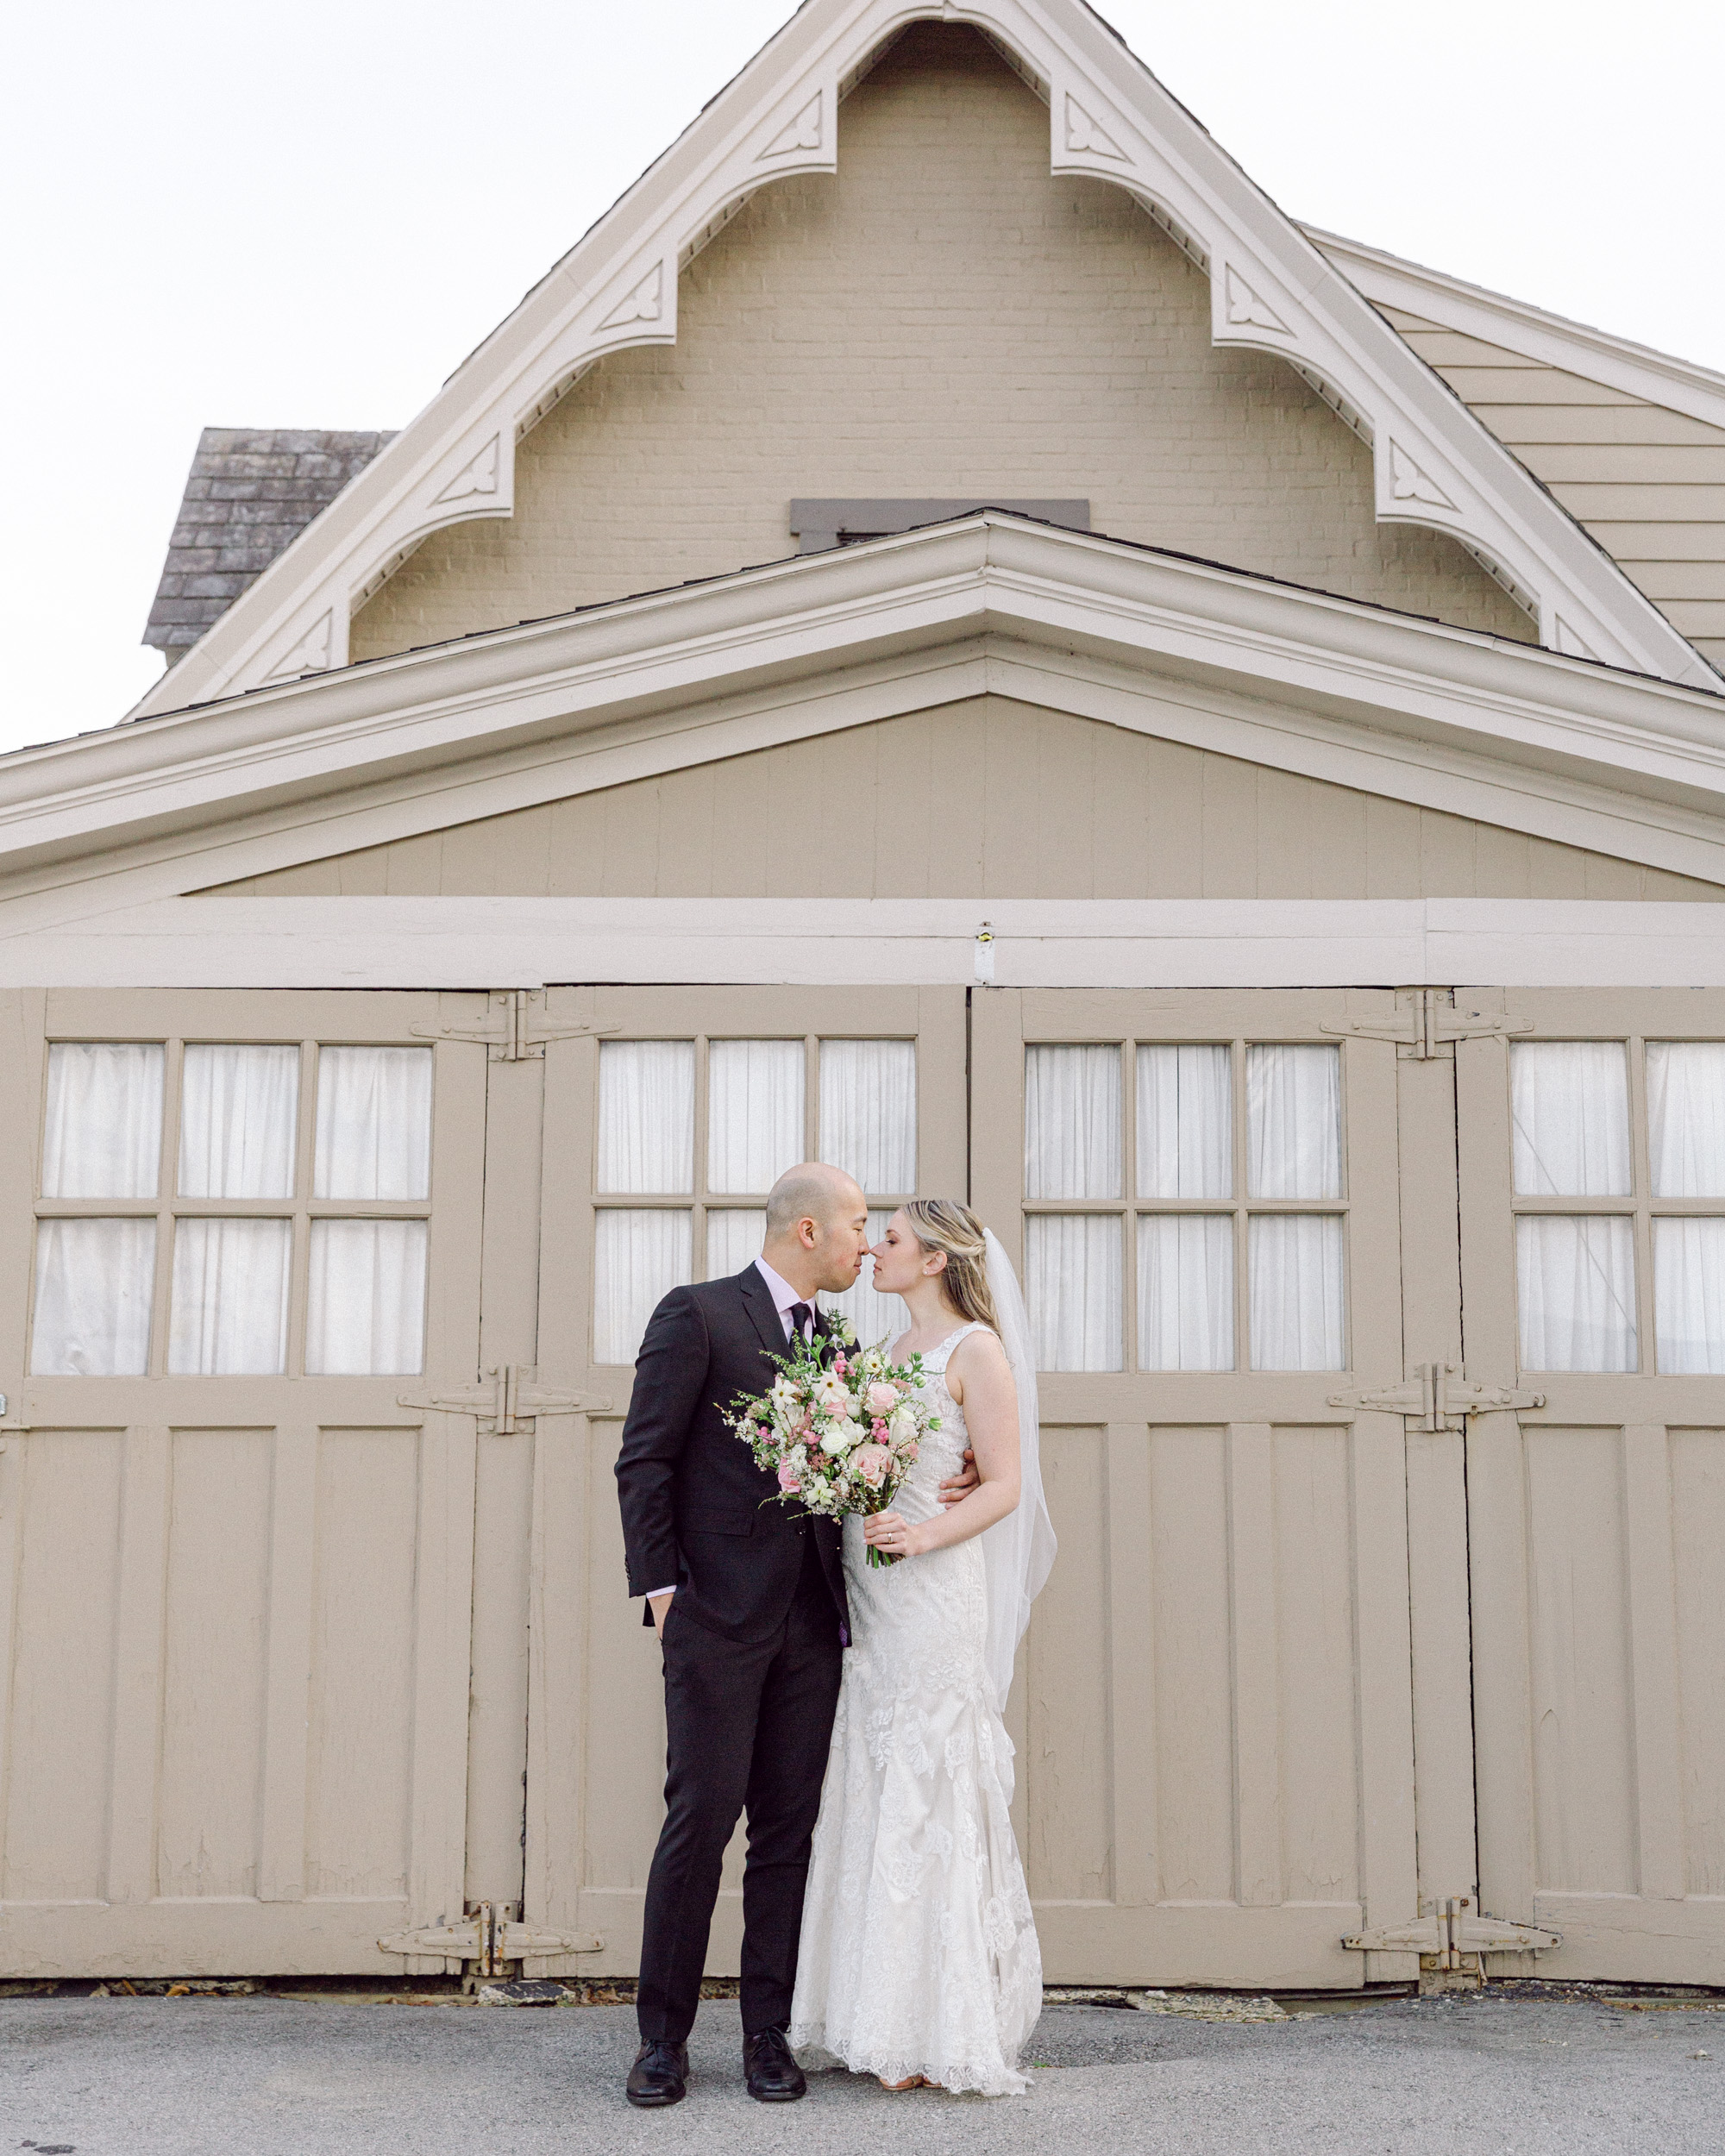 Elegant bride and groom kiss in front of an ornate vintage carriage barn at the Sayre Mansion in Bethlehem, PA by Laura Billingham Photography